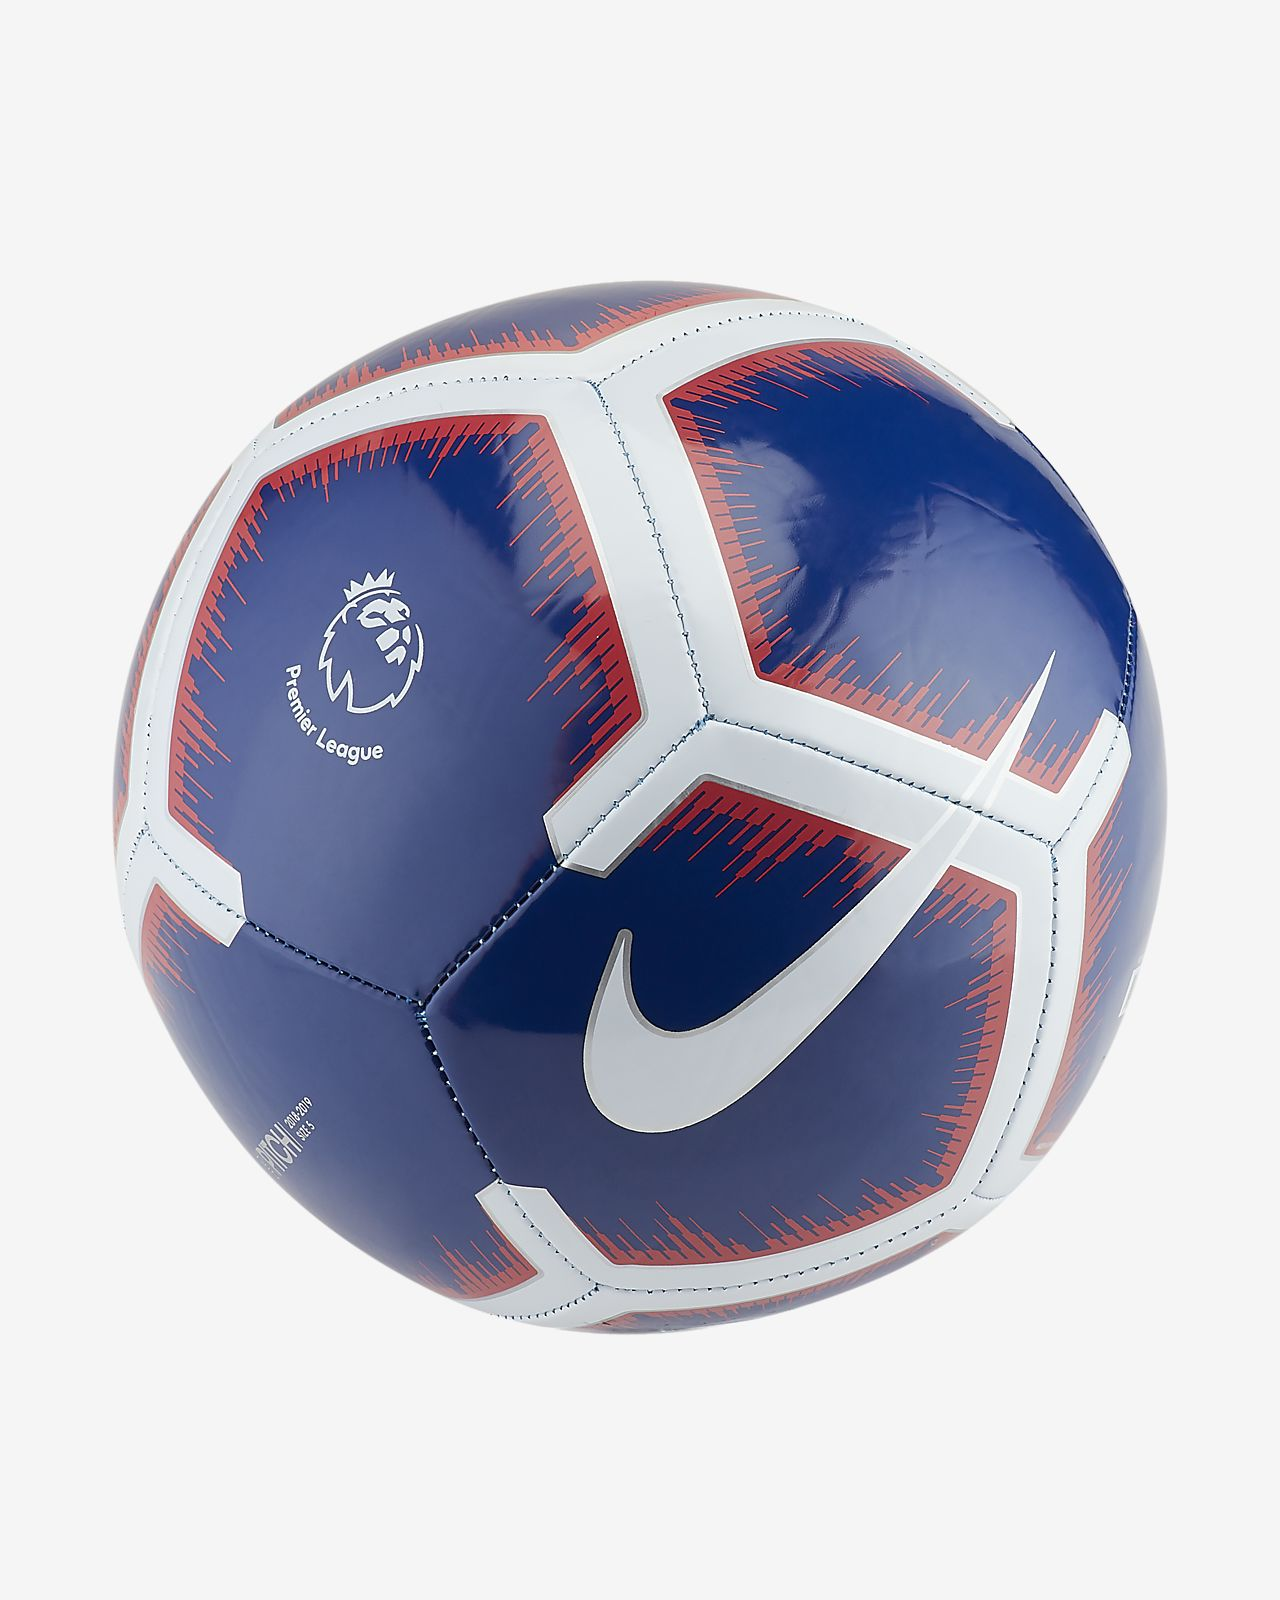 Premier De League Pitch Ballon Football CdeWQBxro